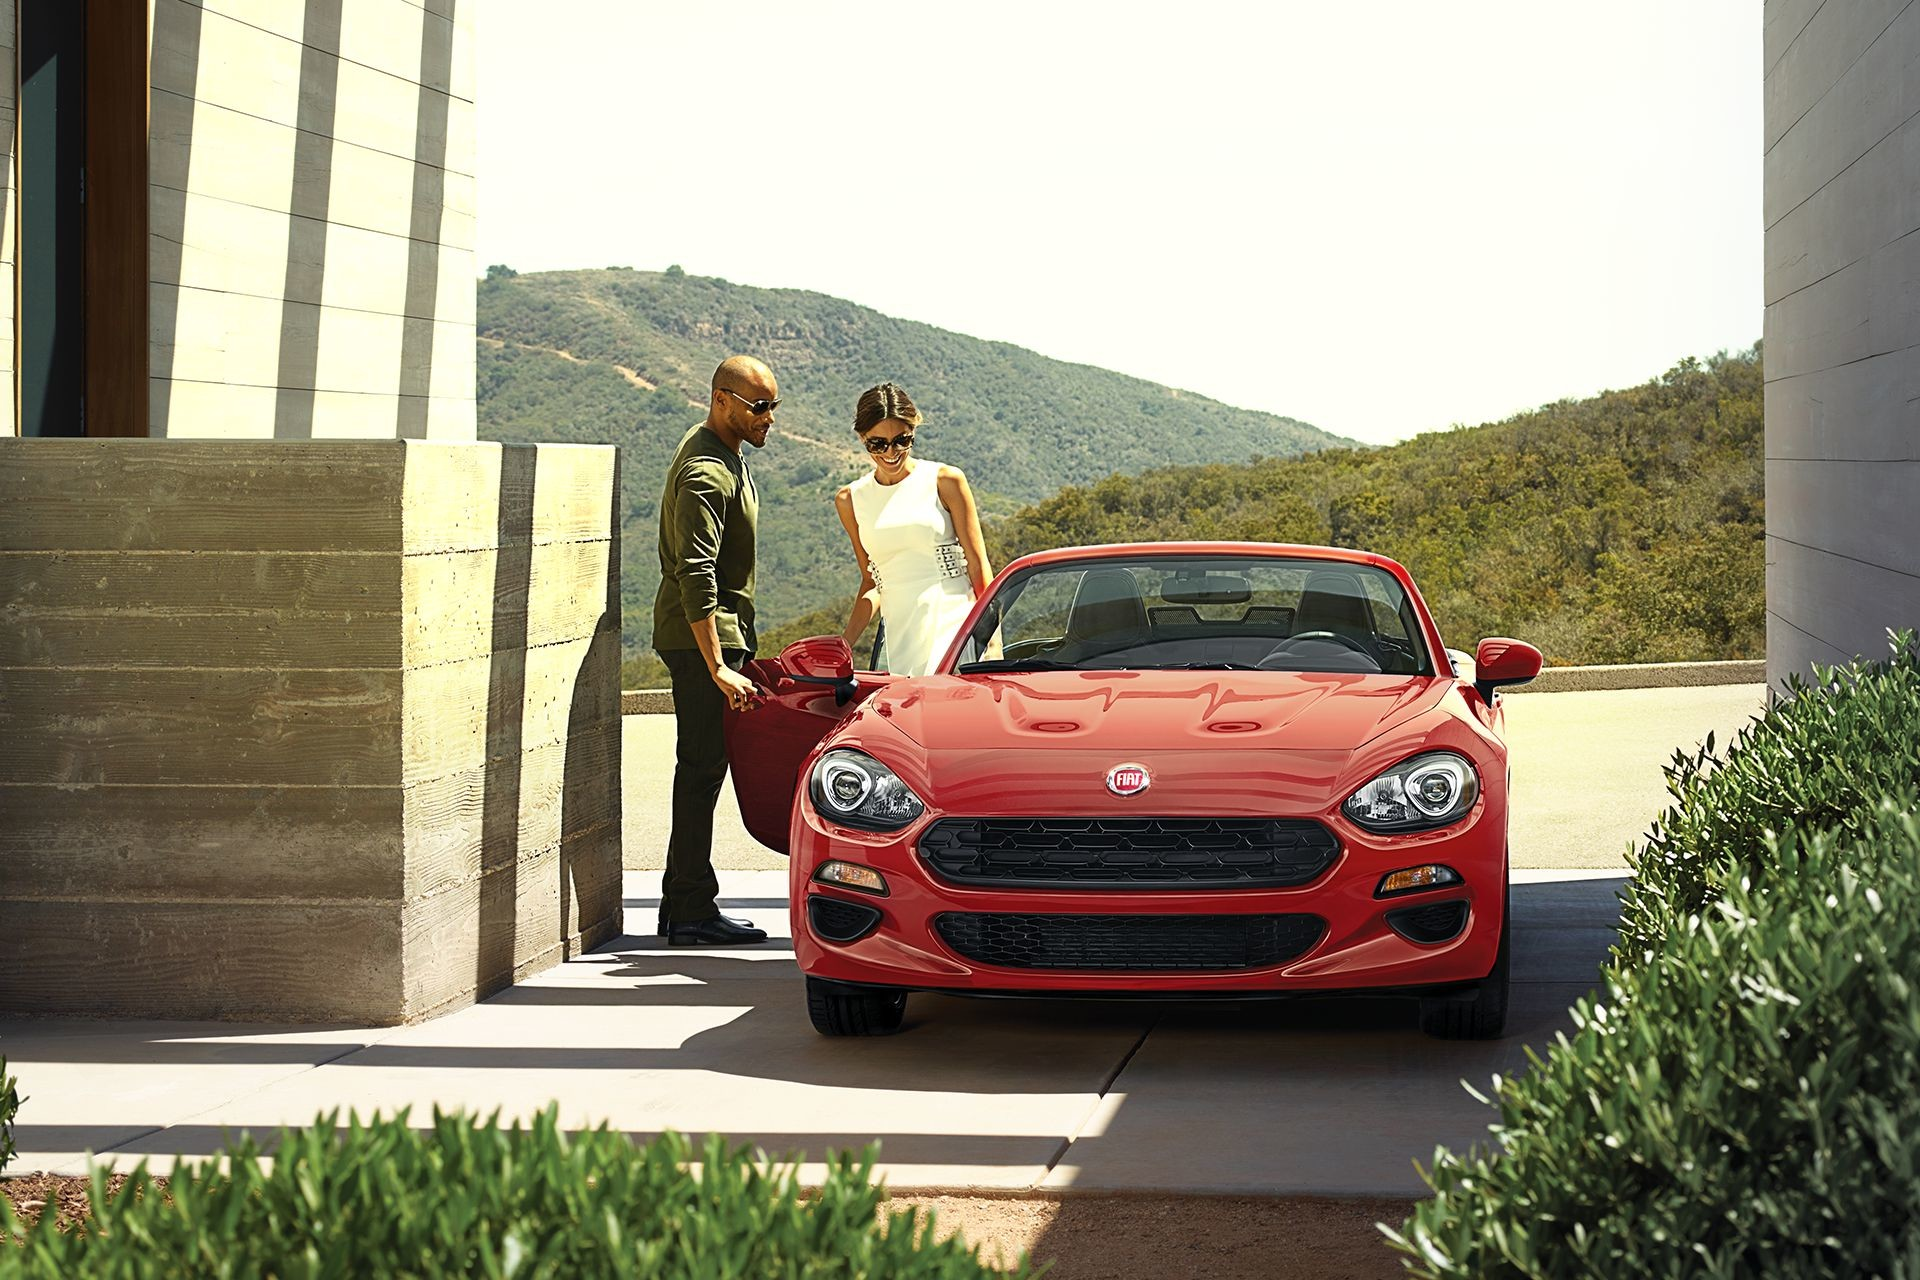 2018 Fiat 124 Spider Roadster gallery exterior italian in every way